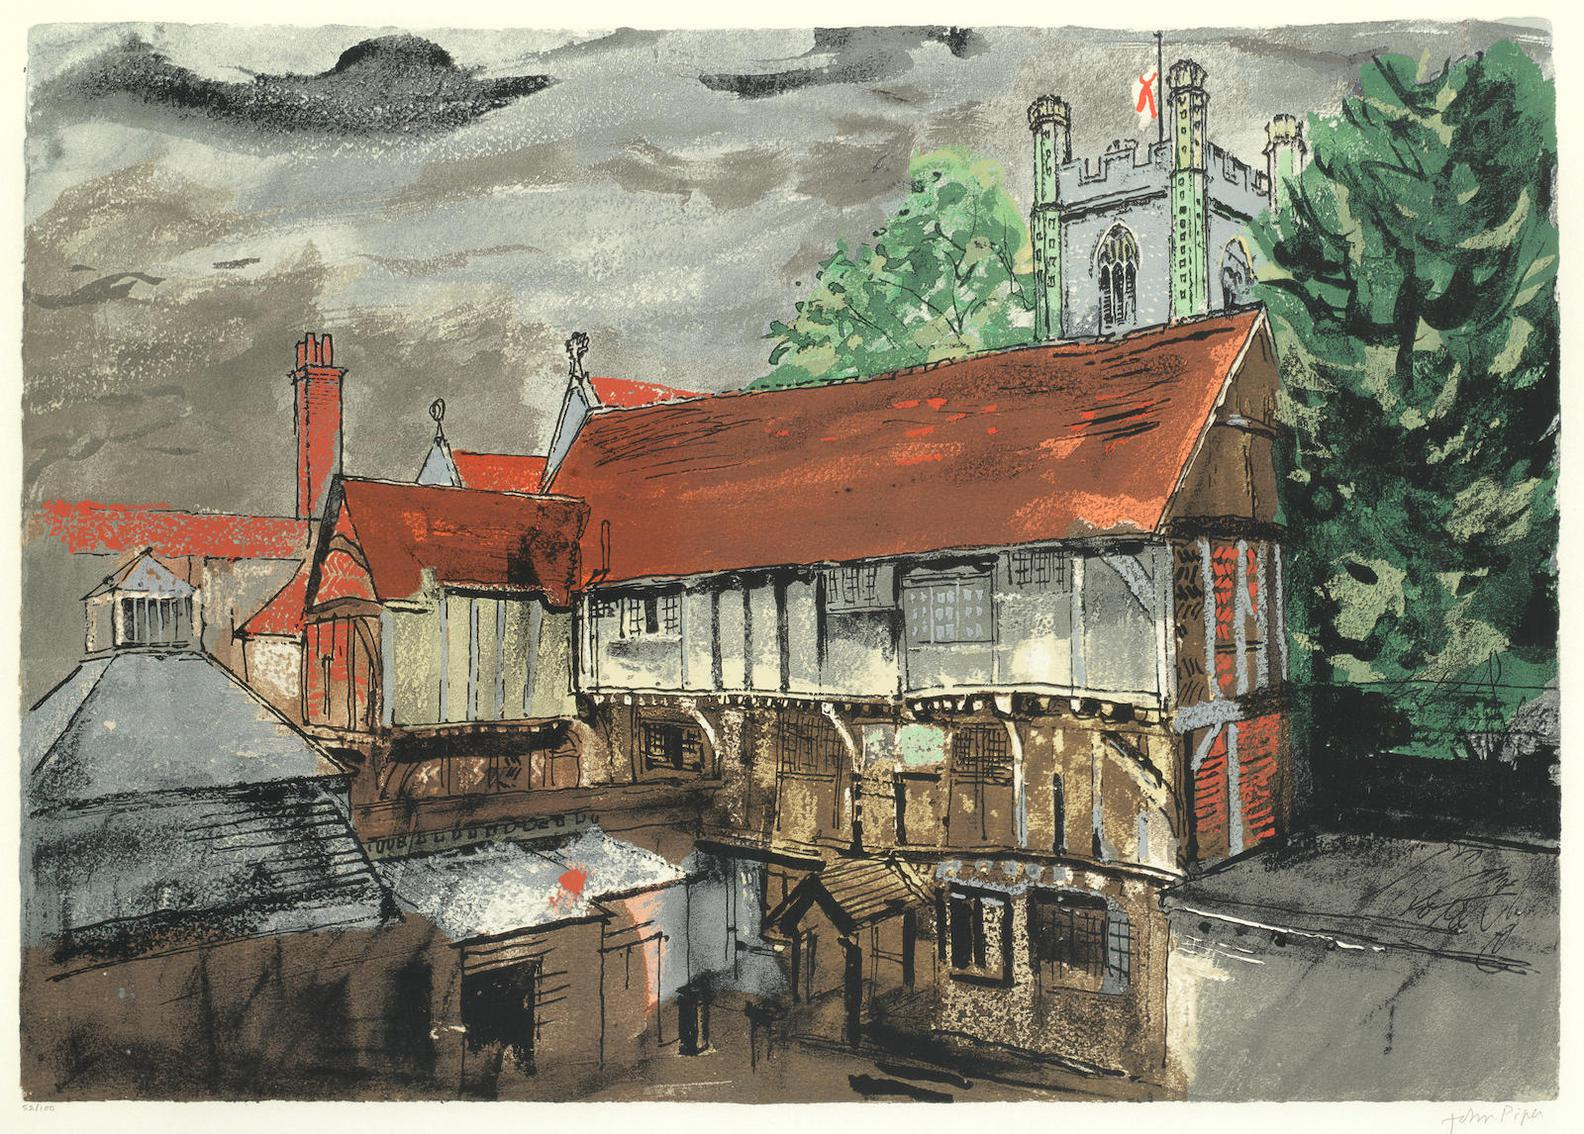 John Piper-Chantry House, Henley (Levinson 352)-1983